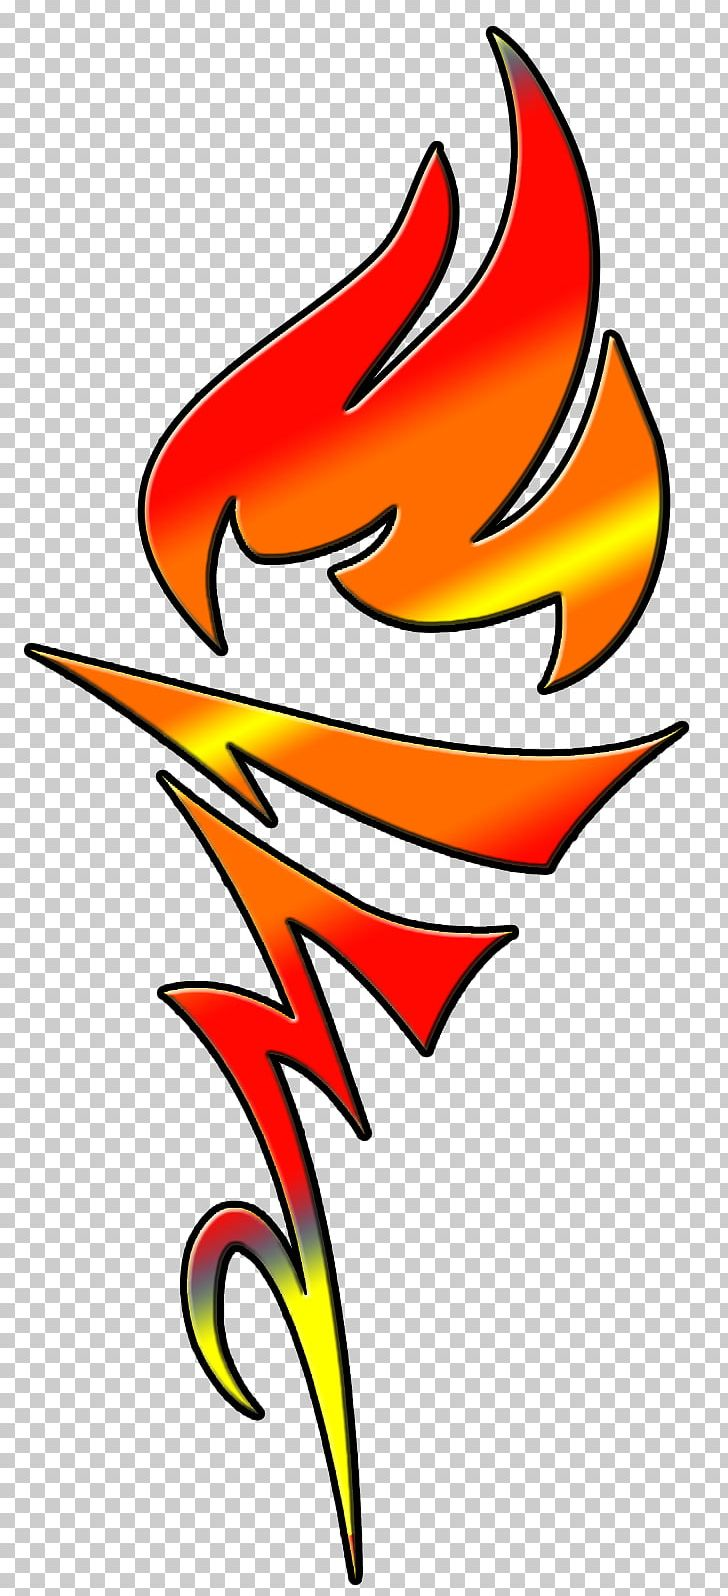 Torch Logo Olympic Flame PNG, Clipart, Animation, Art.